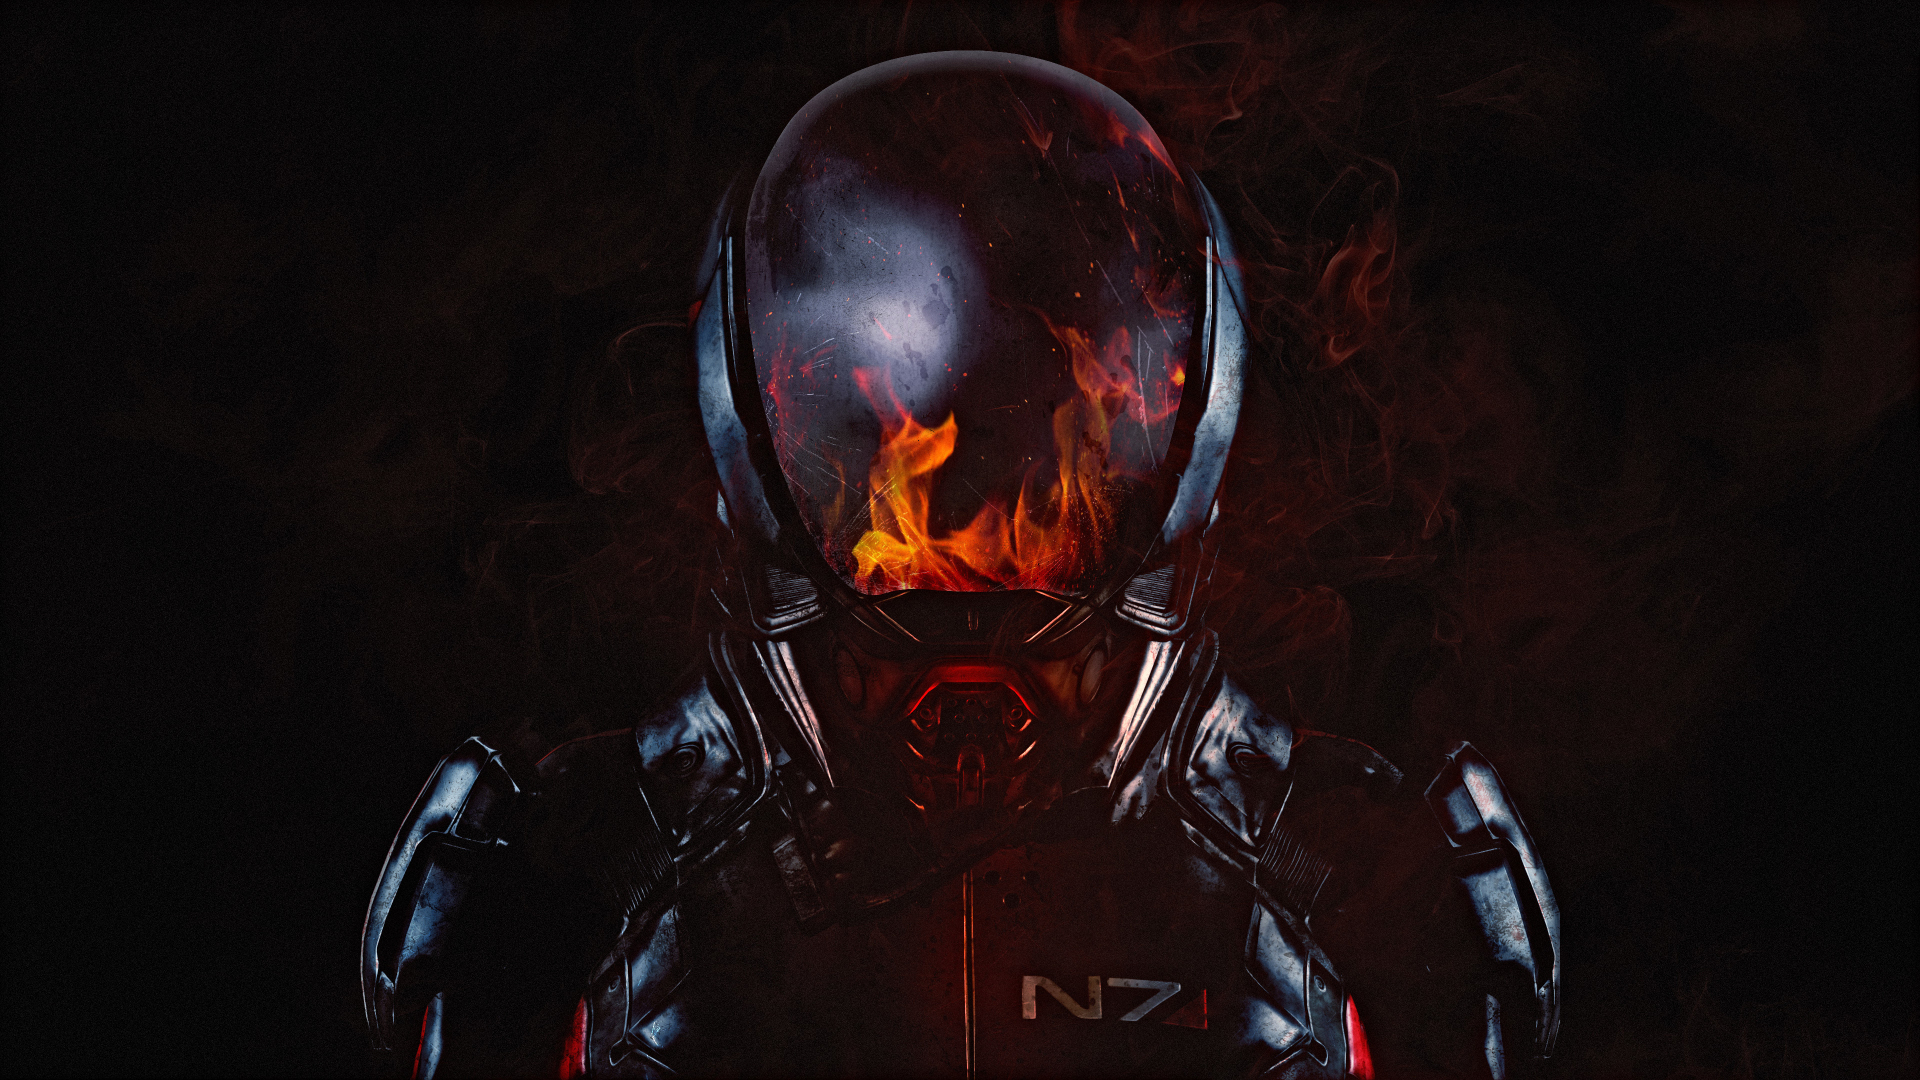 Download 1920x1080 Wallpaper Mass Effect Andromeda N7 Soldier